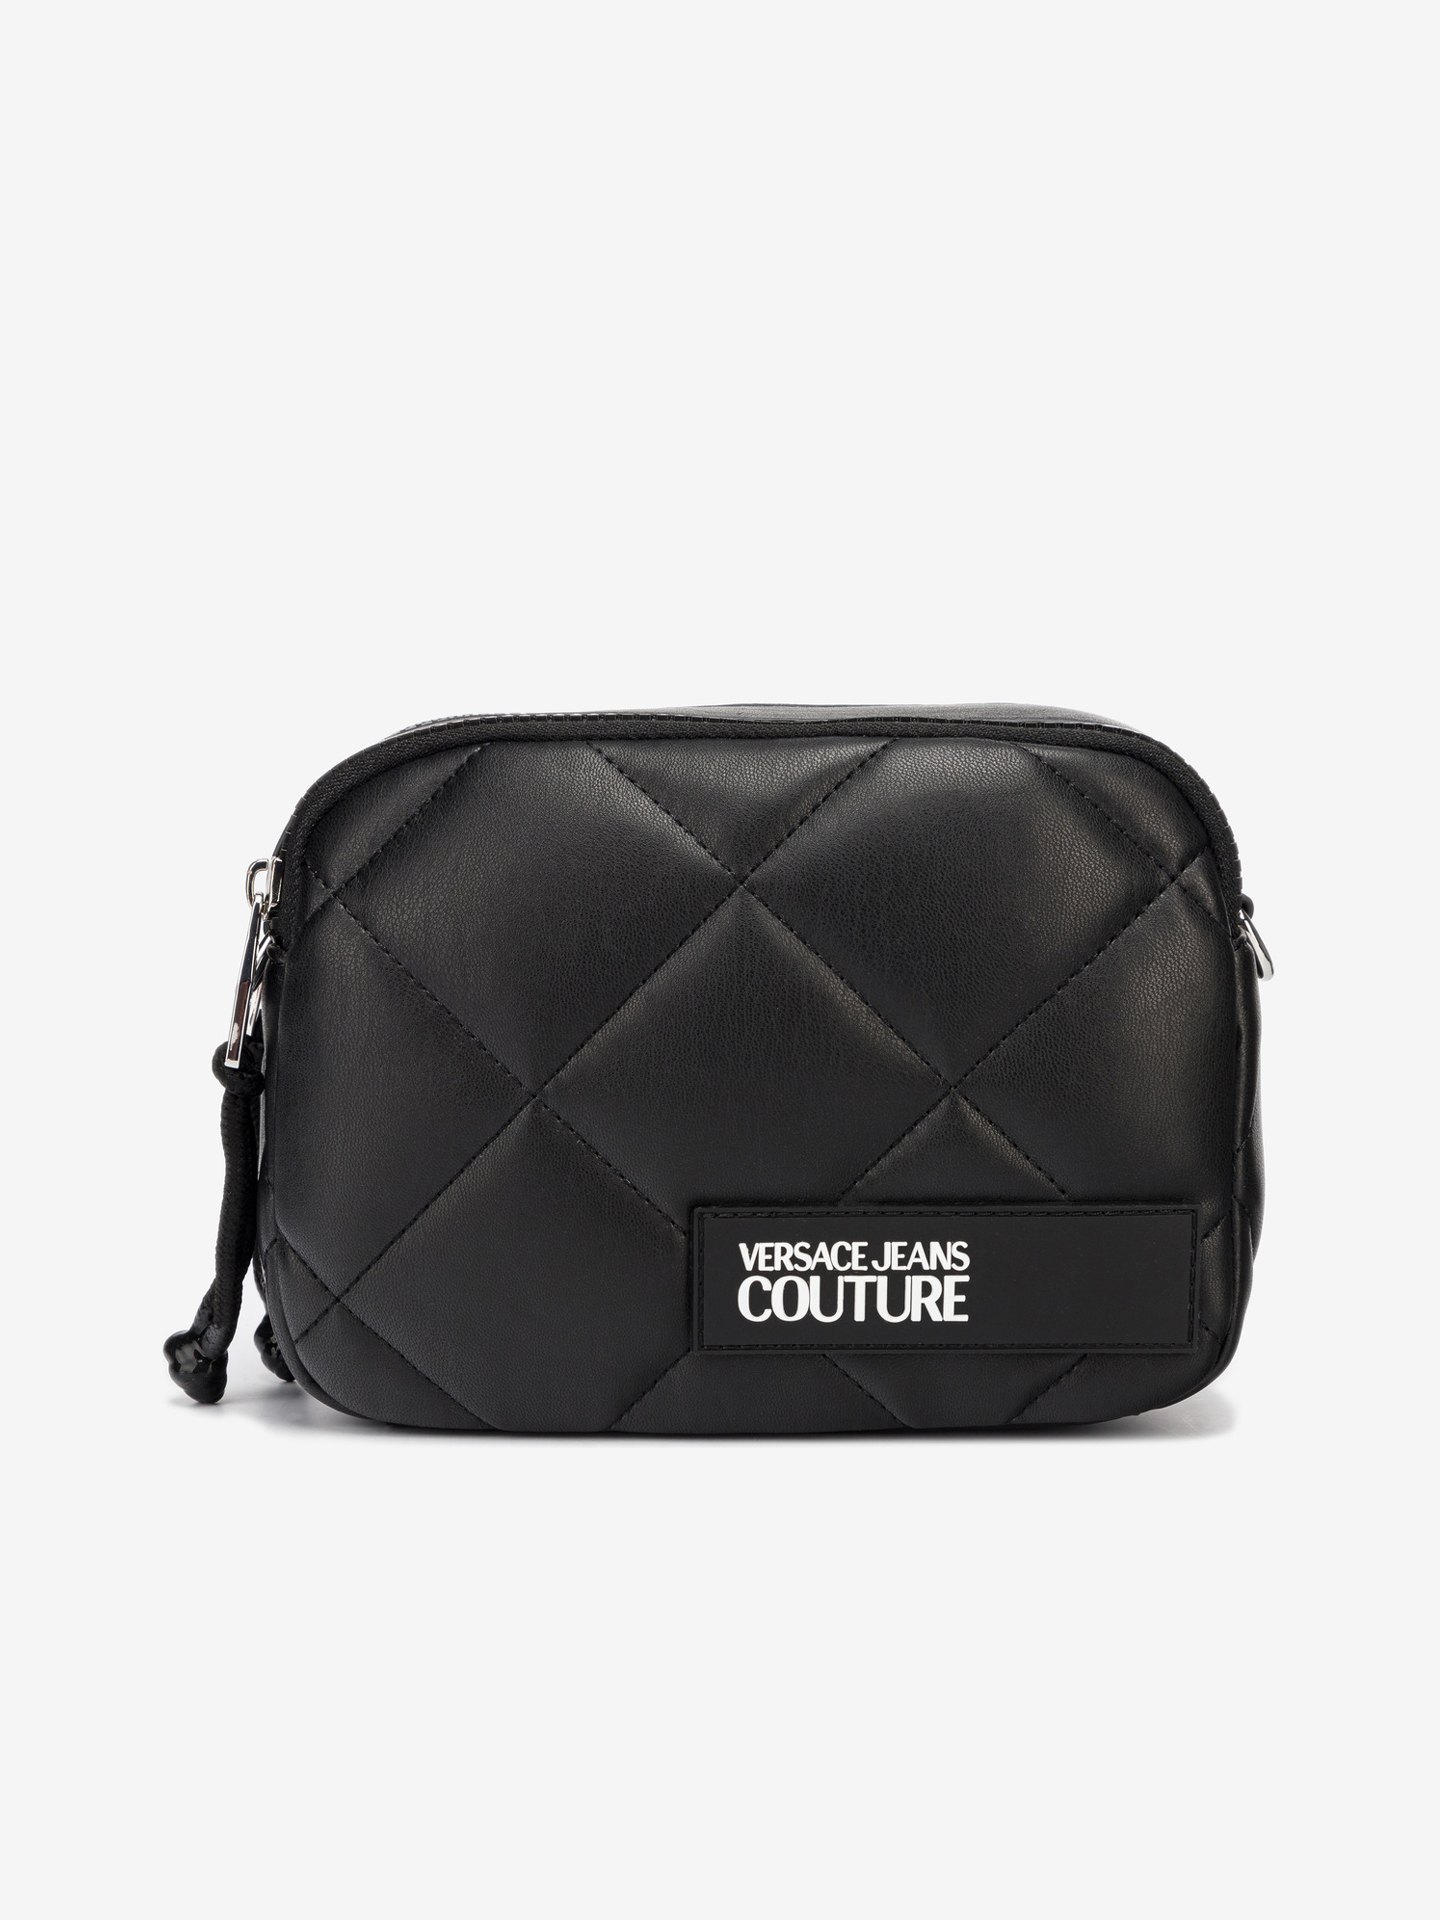 Versace Jeans Couture crna crossbody torbica